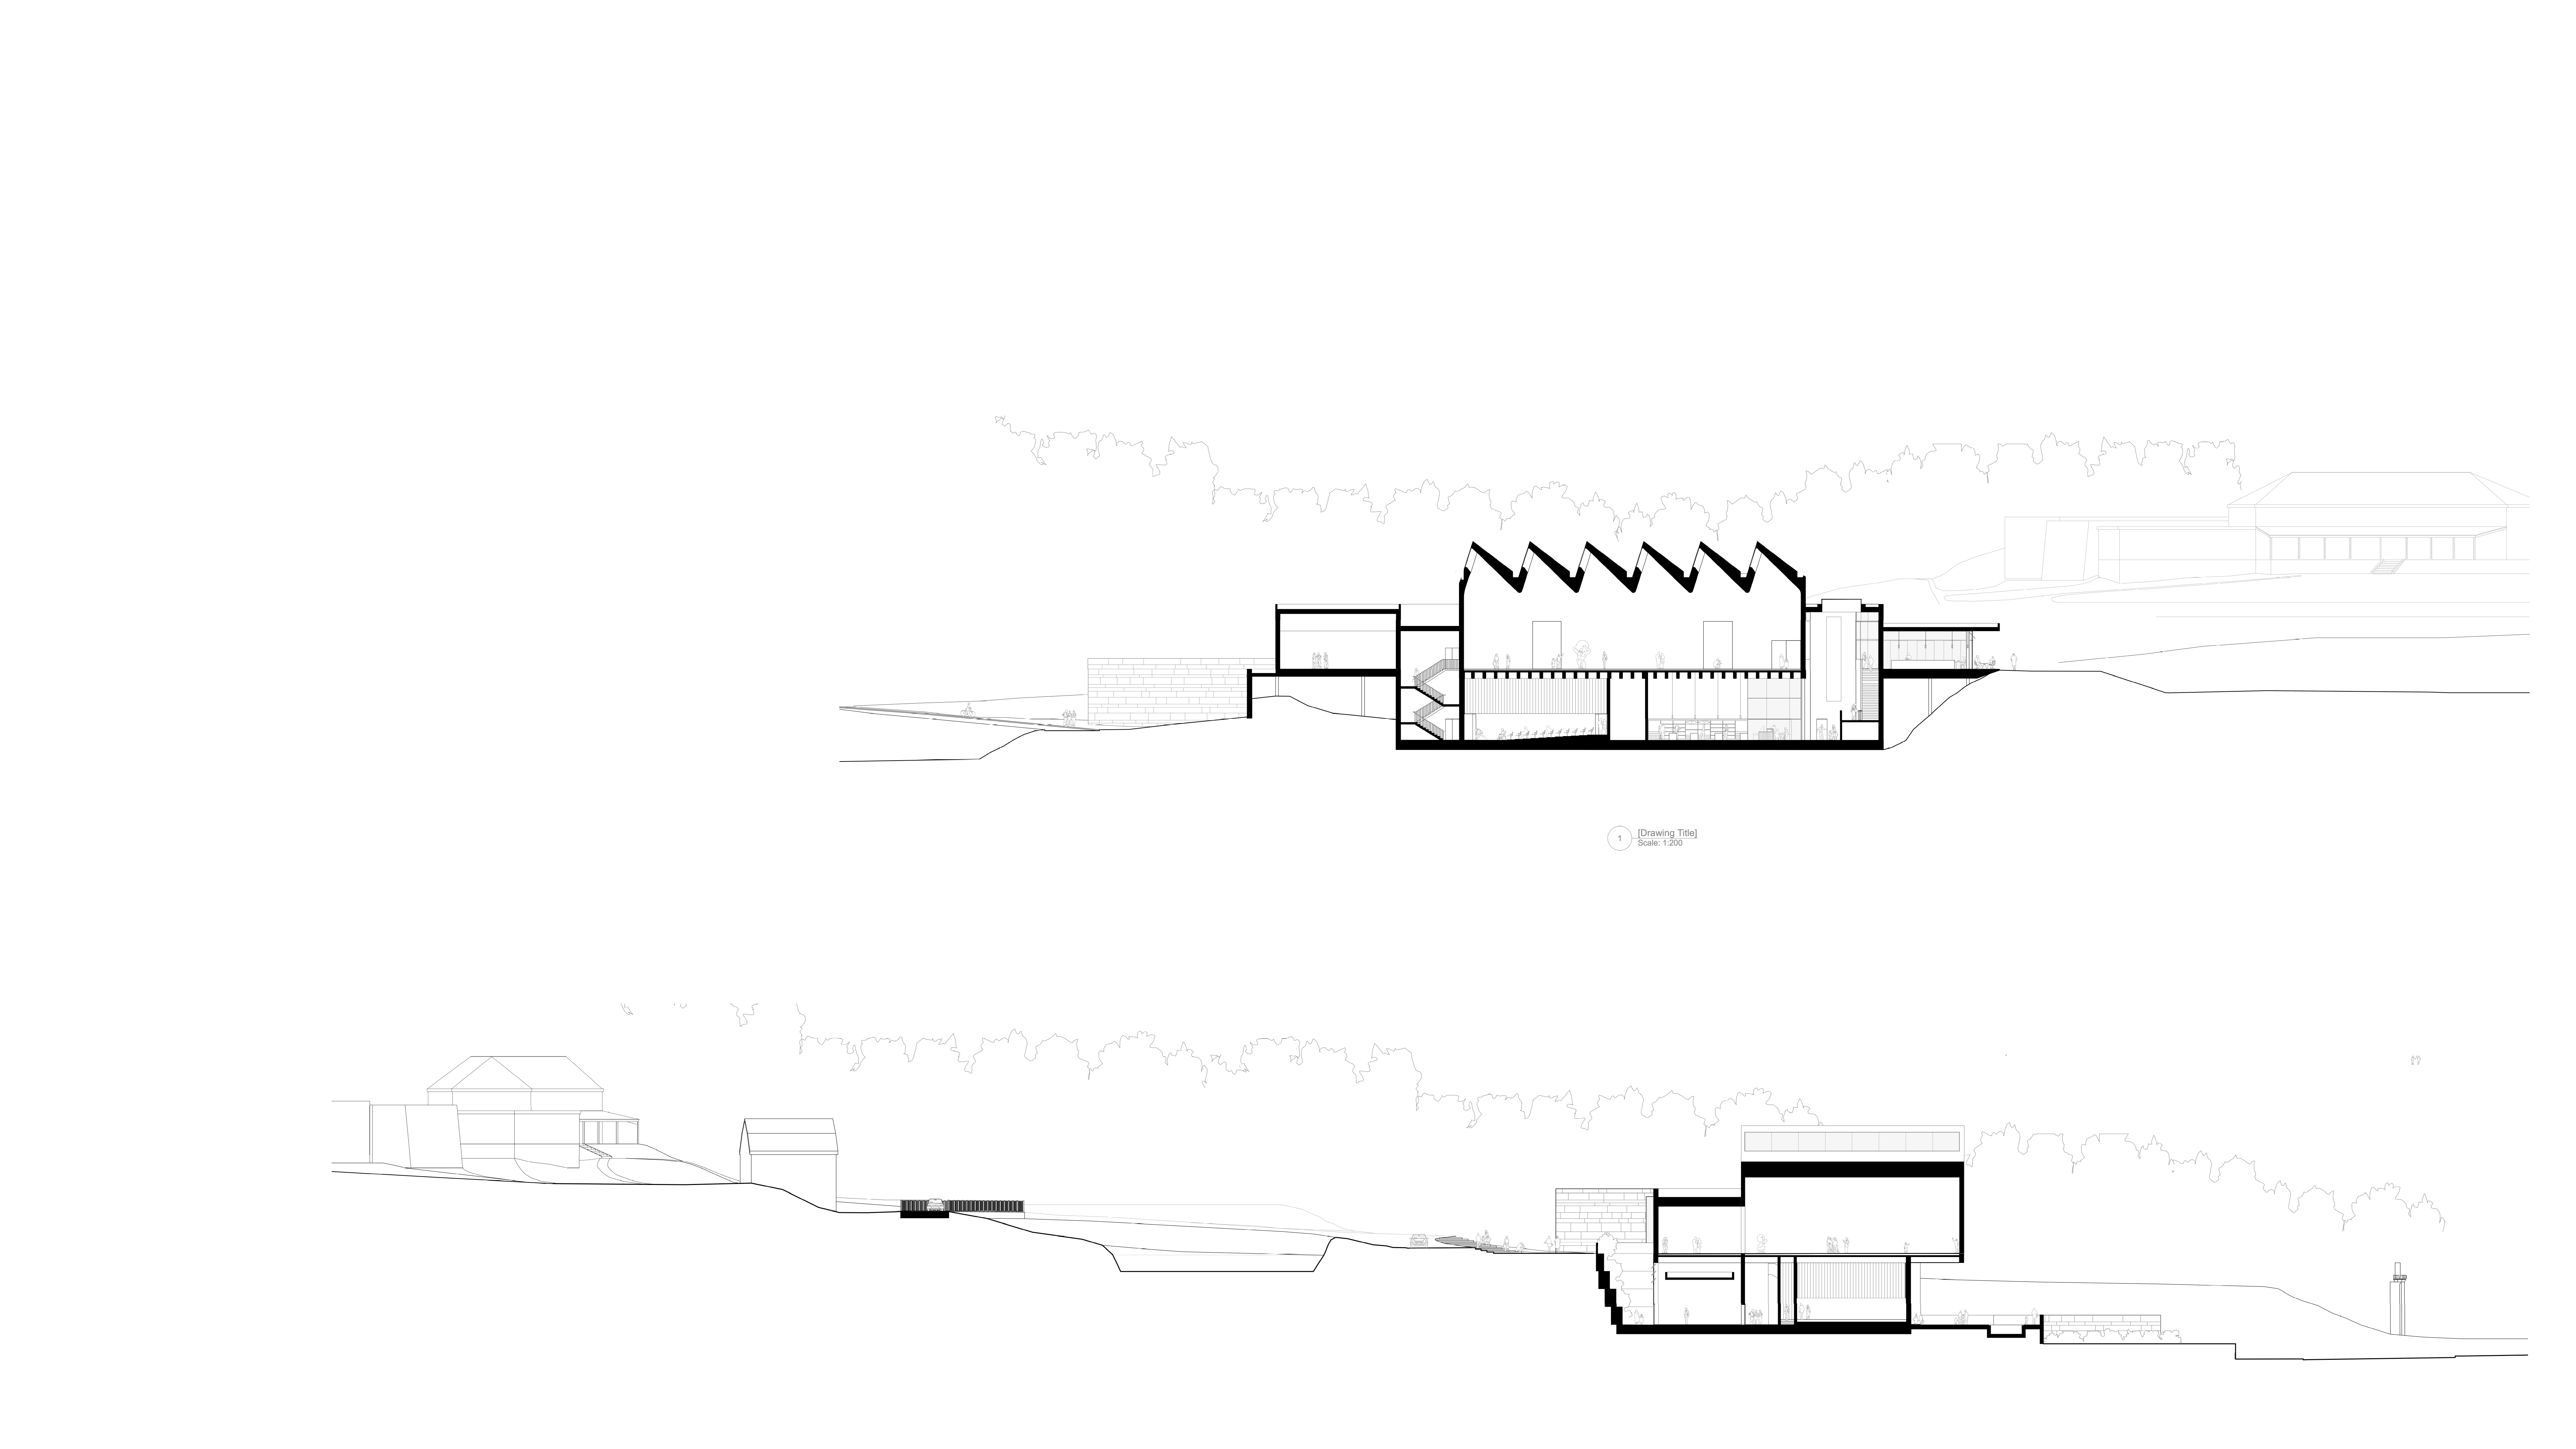 Sections through new museum by Keith Williams Architects for lwl-freilichtmuseum Detmold invited competition